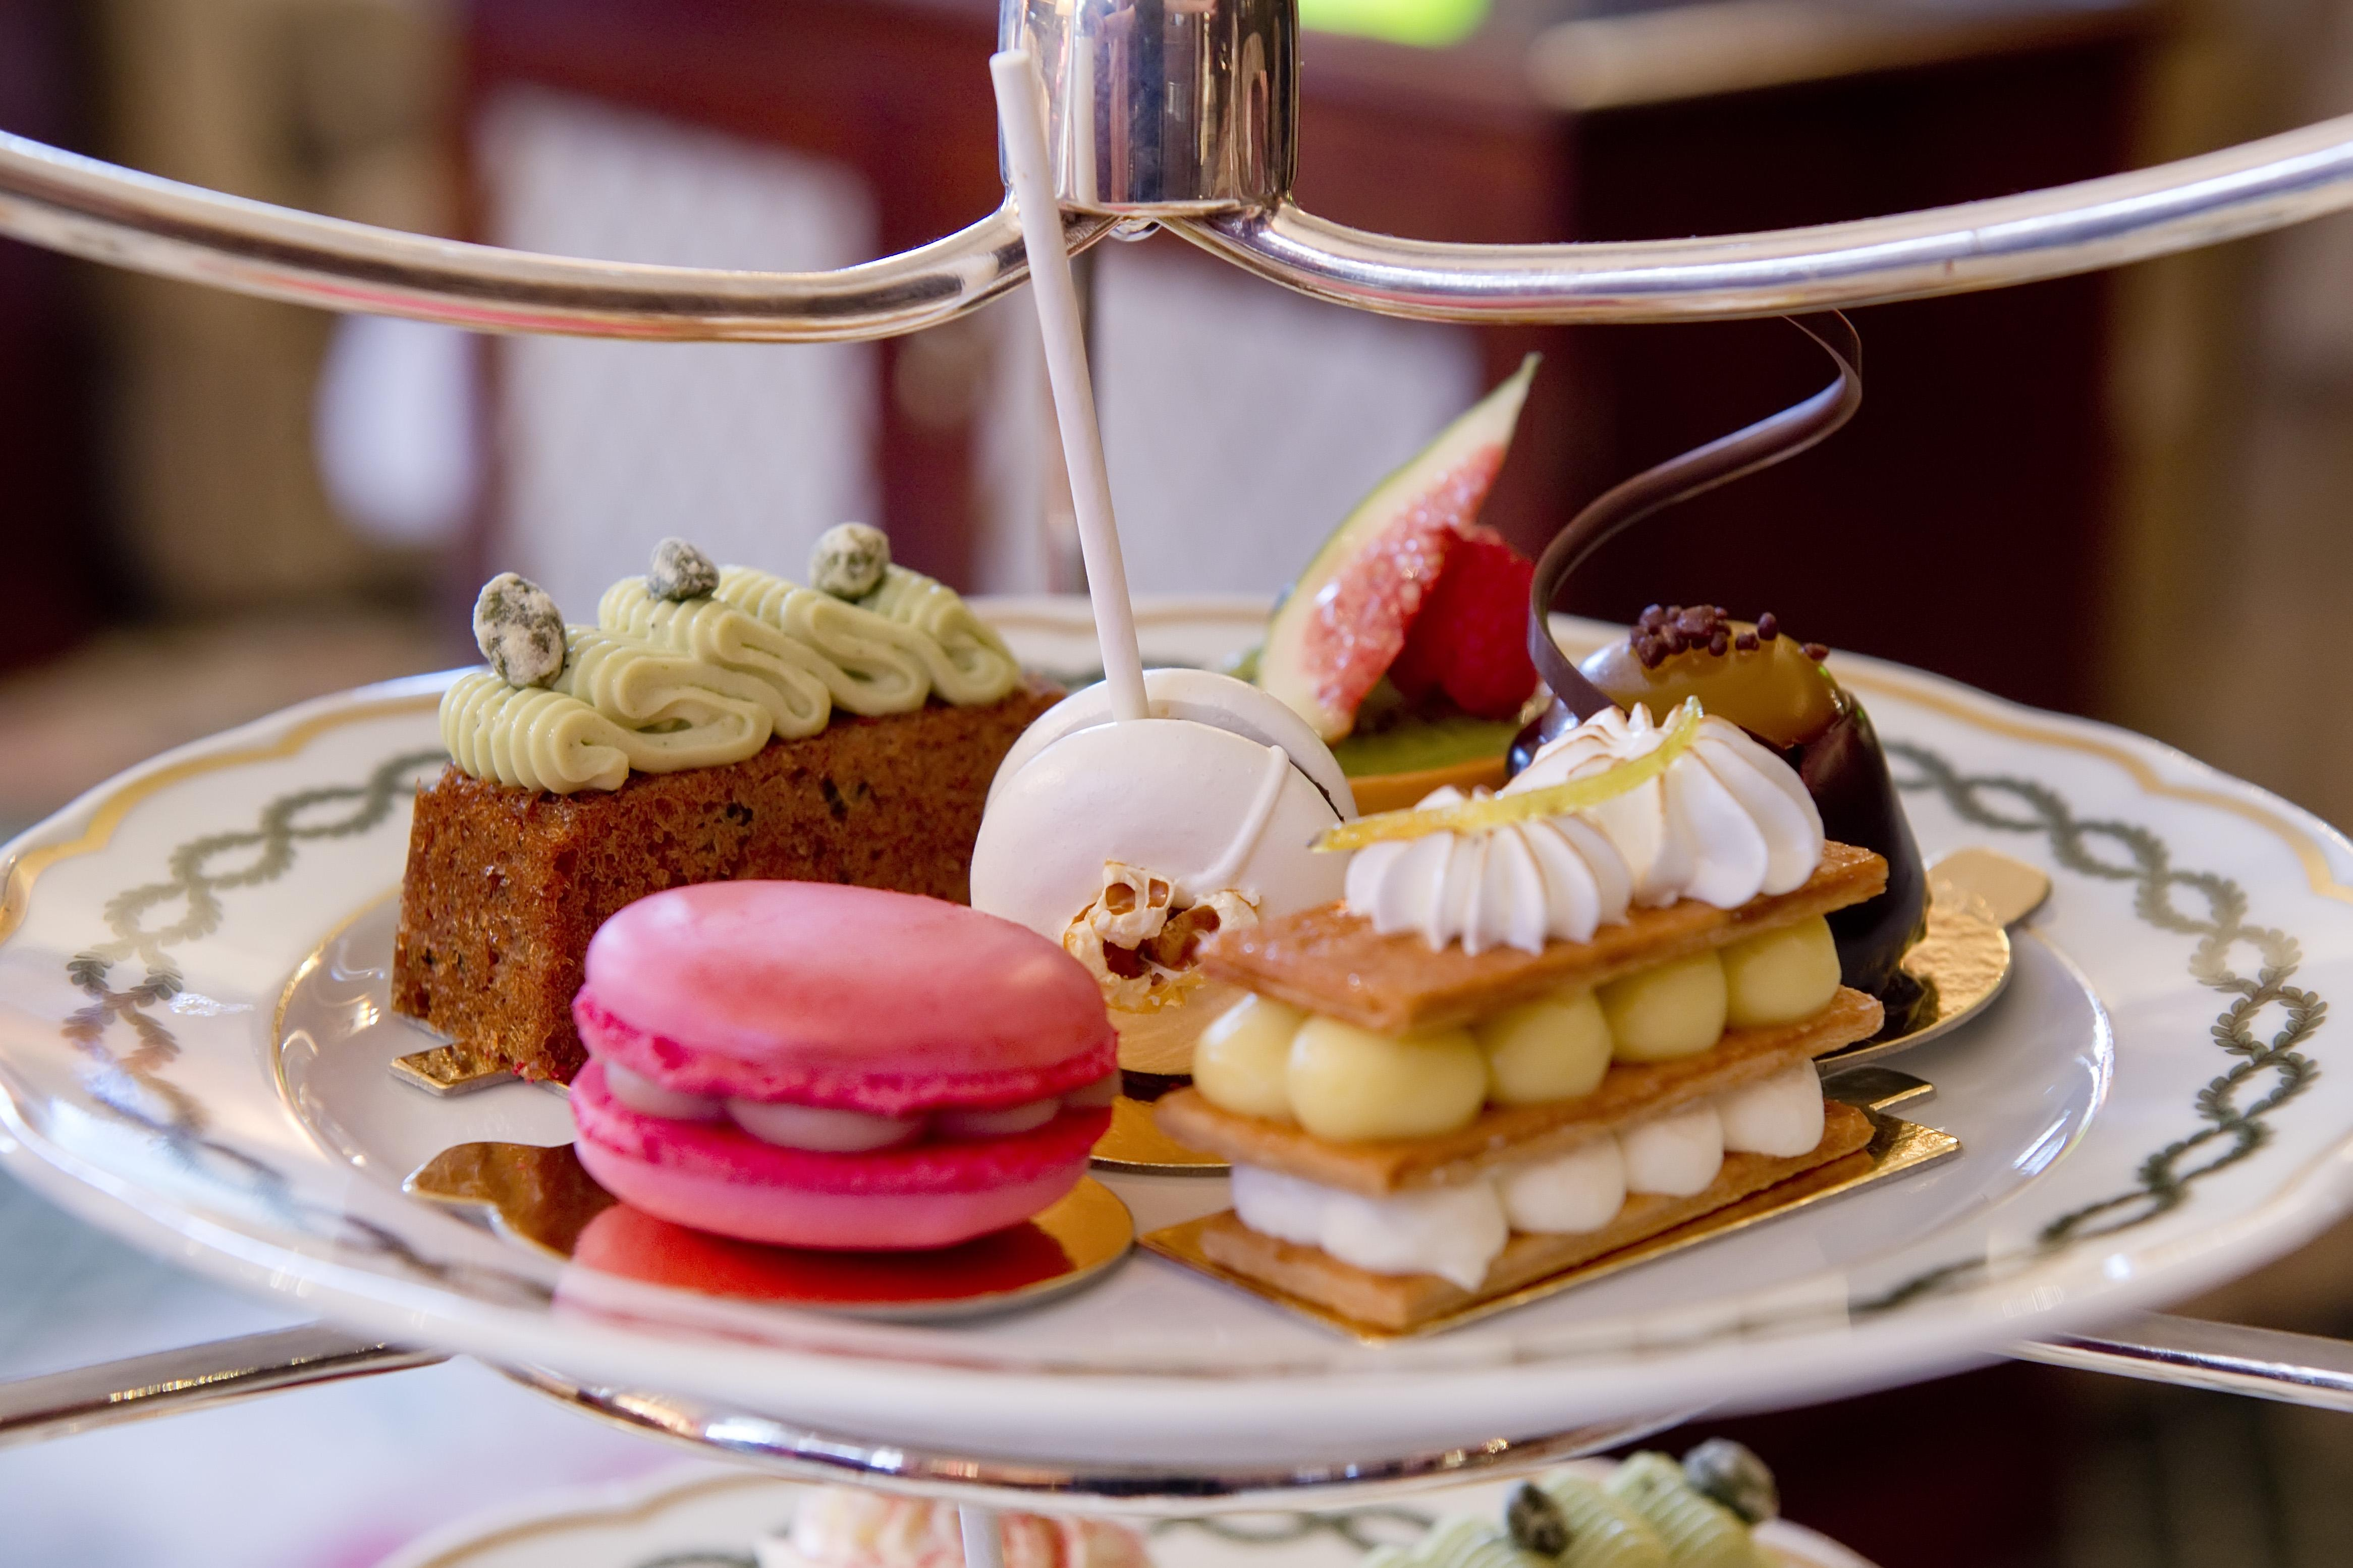 Afternoon Tea at the Milestone Hotel - London